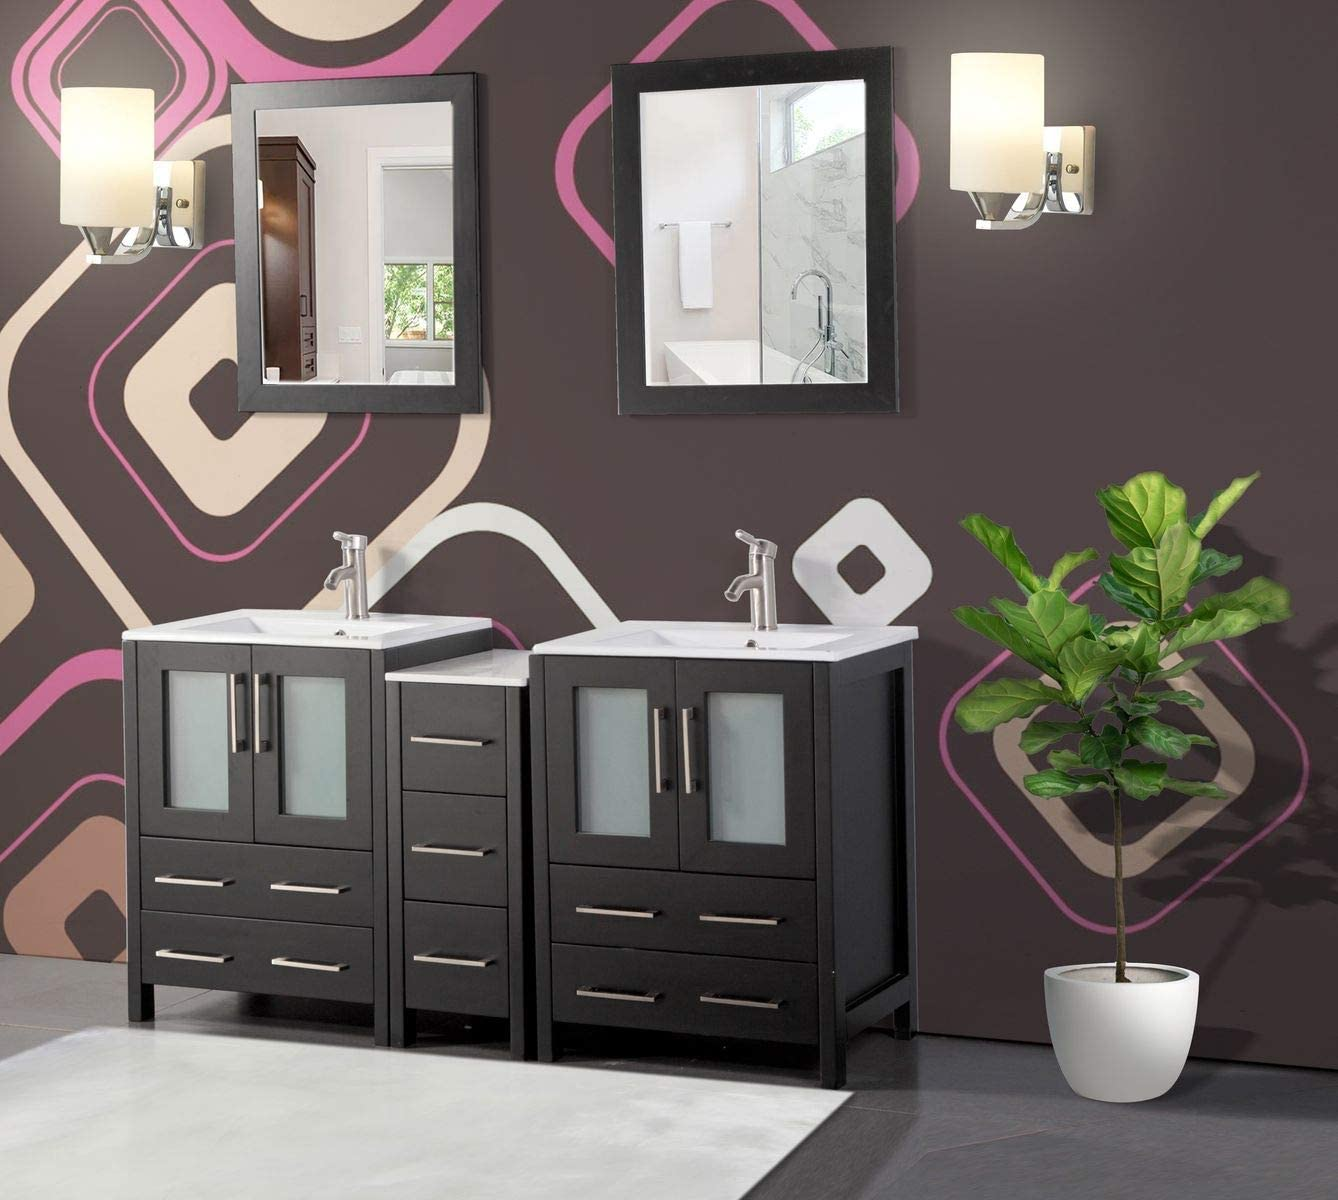 Vanity Art 60 Inch Double Sink Bathroom Vanity Combo Set 1 Side Cabinets 2 Shelves Ceramic Top Bathroom Cabinet With Two Free Mirror Espresso Va3024 60 E Amazon Co Uk Kitchen Home